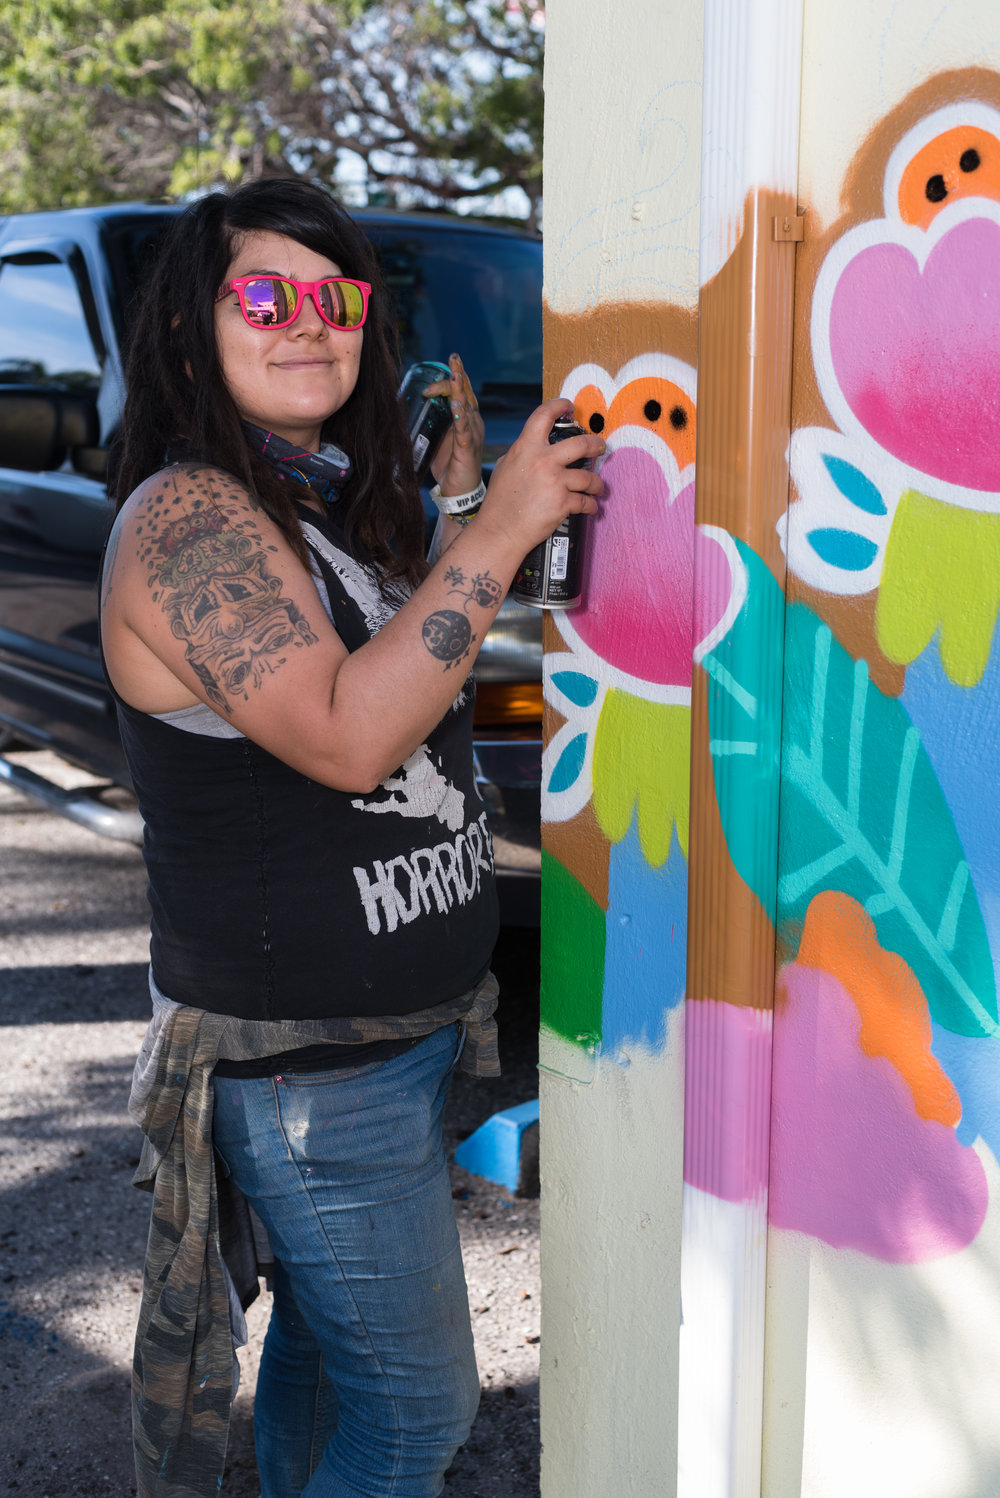 Global Muralist - Ms.Yellow (real name Nuria Ortiz) is an international muralist, artist, craftswoman and jewelry maker. Born in Long Beach, Ca of Mexican descent, she has dedicated her life to the creative development and empowerment of community and youth through direct engagement. Her goal has been to utilize her knowledge and help bring people together in using art as a therapeutic release. She has worked closely with schools, community centers, boys and girls clubs etc to develop workshops and mentorship to the youth. As a muralist Ms.Yellow has worked with communities to bring colorful murals with dreamy color schemes and endless detail to the masses. Her works center on themes such as culture, sisterhood, education, unity, love and social justice. Her artwork and murals have been on display in museums, galleries, and streets around the world such as Spain, France, Mexico and Egypt.